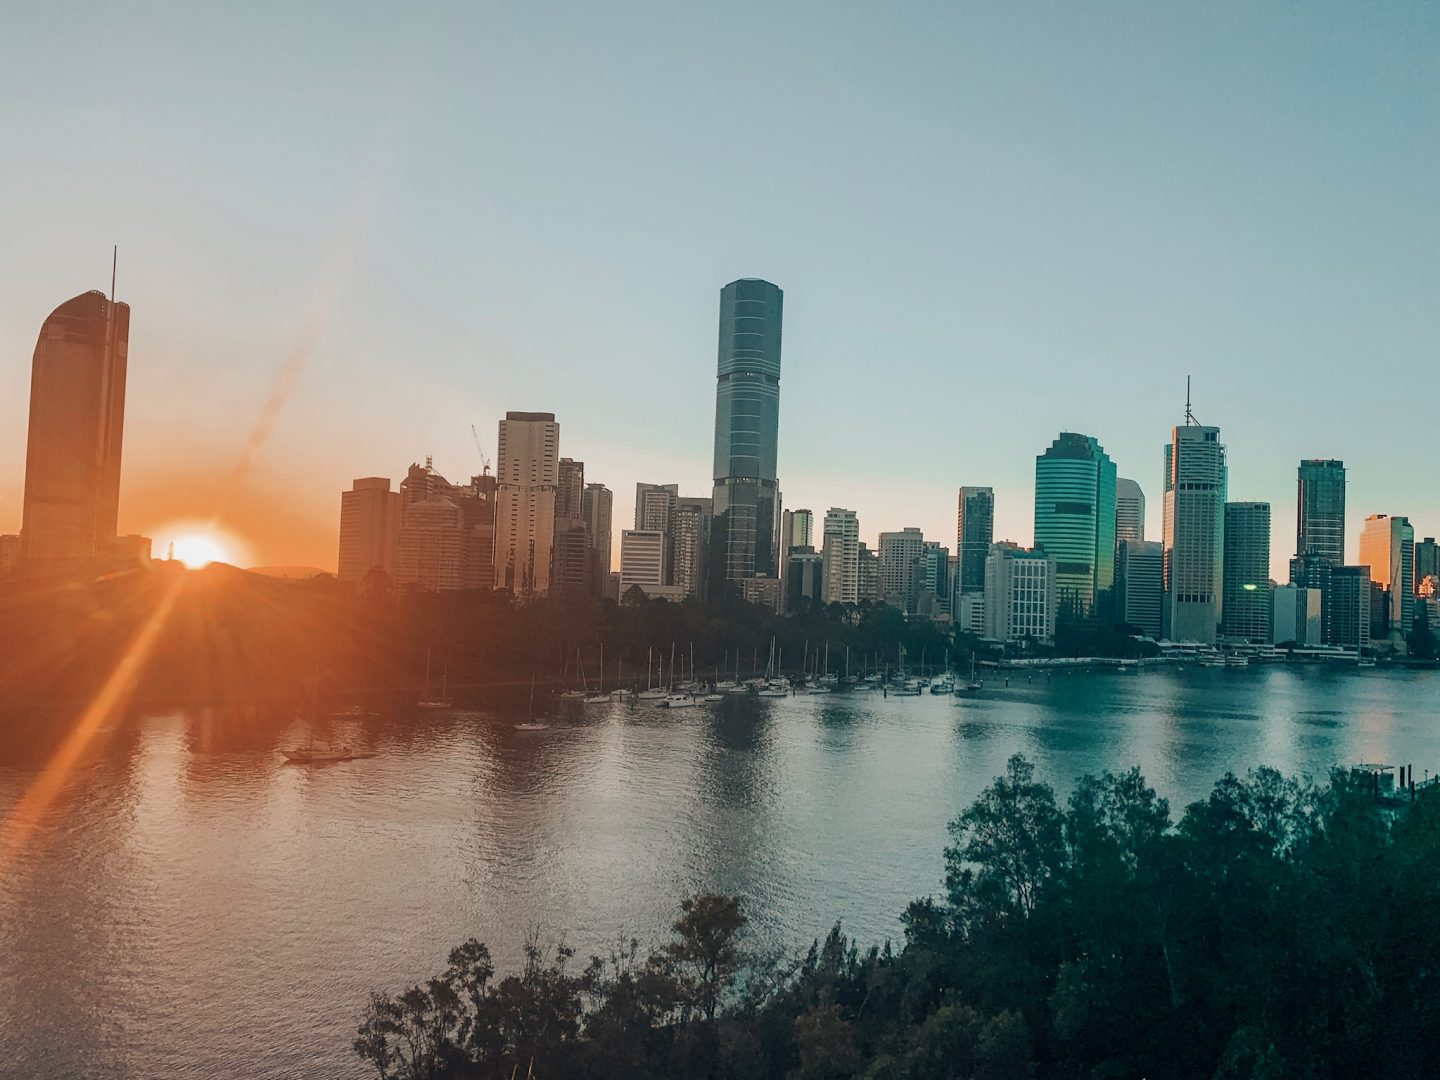 Sunset overlooking the Brisbane skyline at Kangaroo Point.